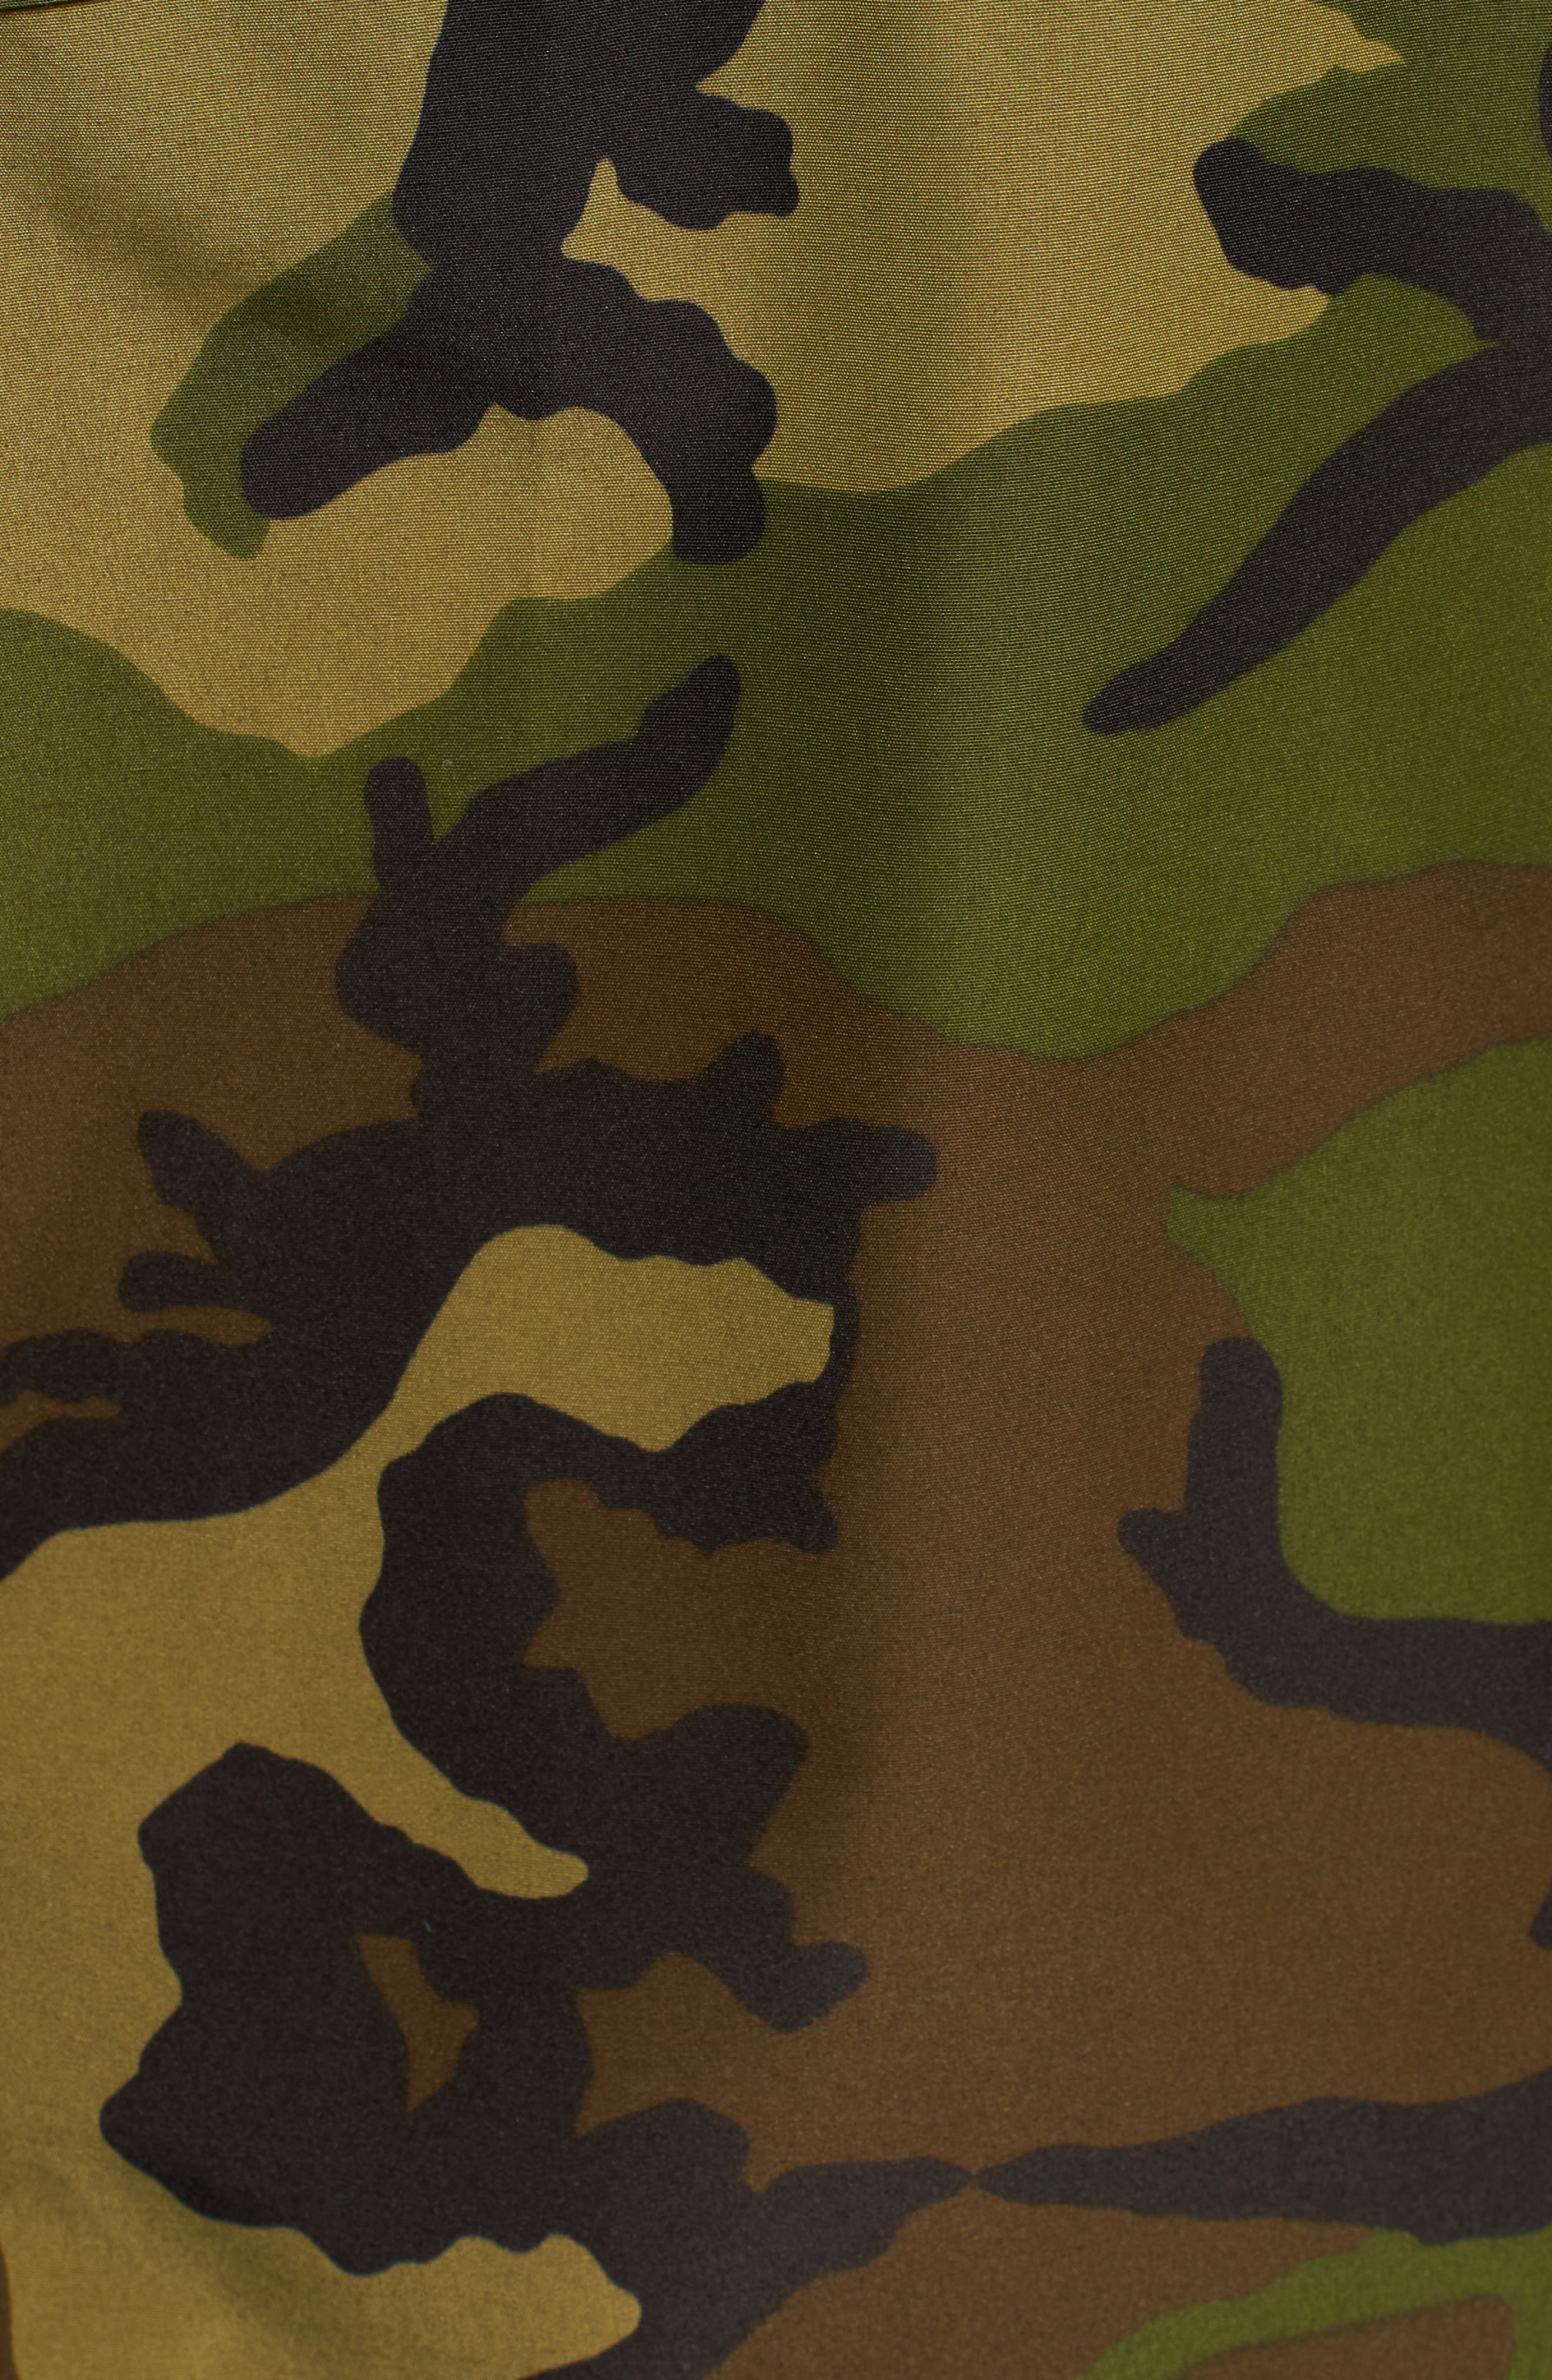 Canmore 625 Fill Power Down Parka,                             Alternate thumbnail 7, color,                             CLASSIC CAMO